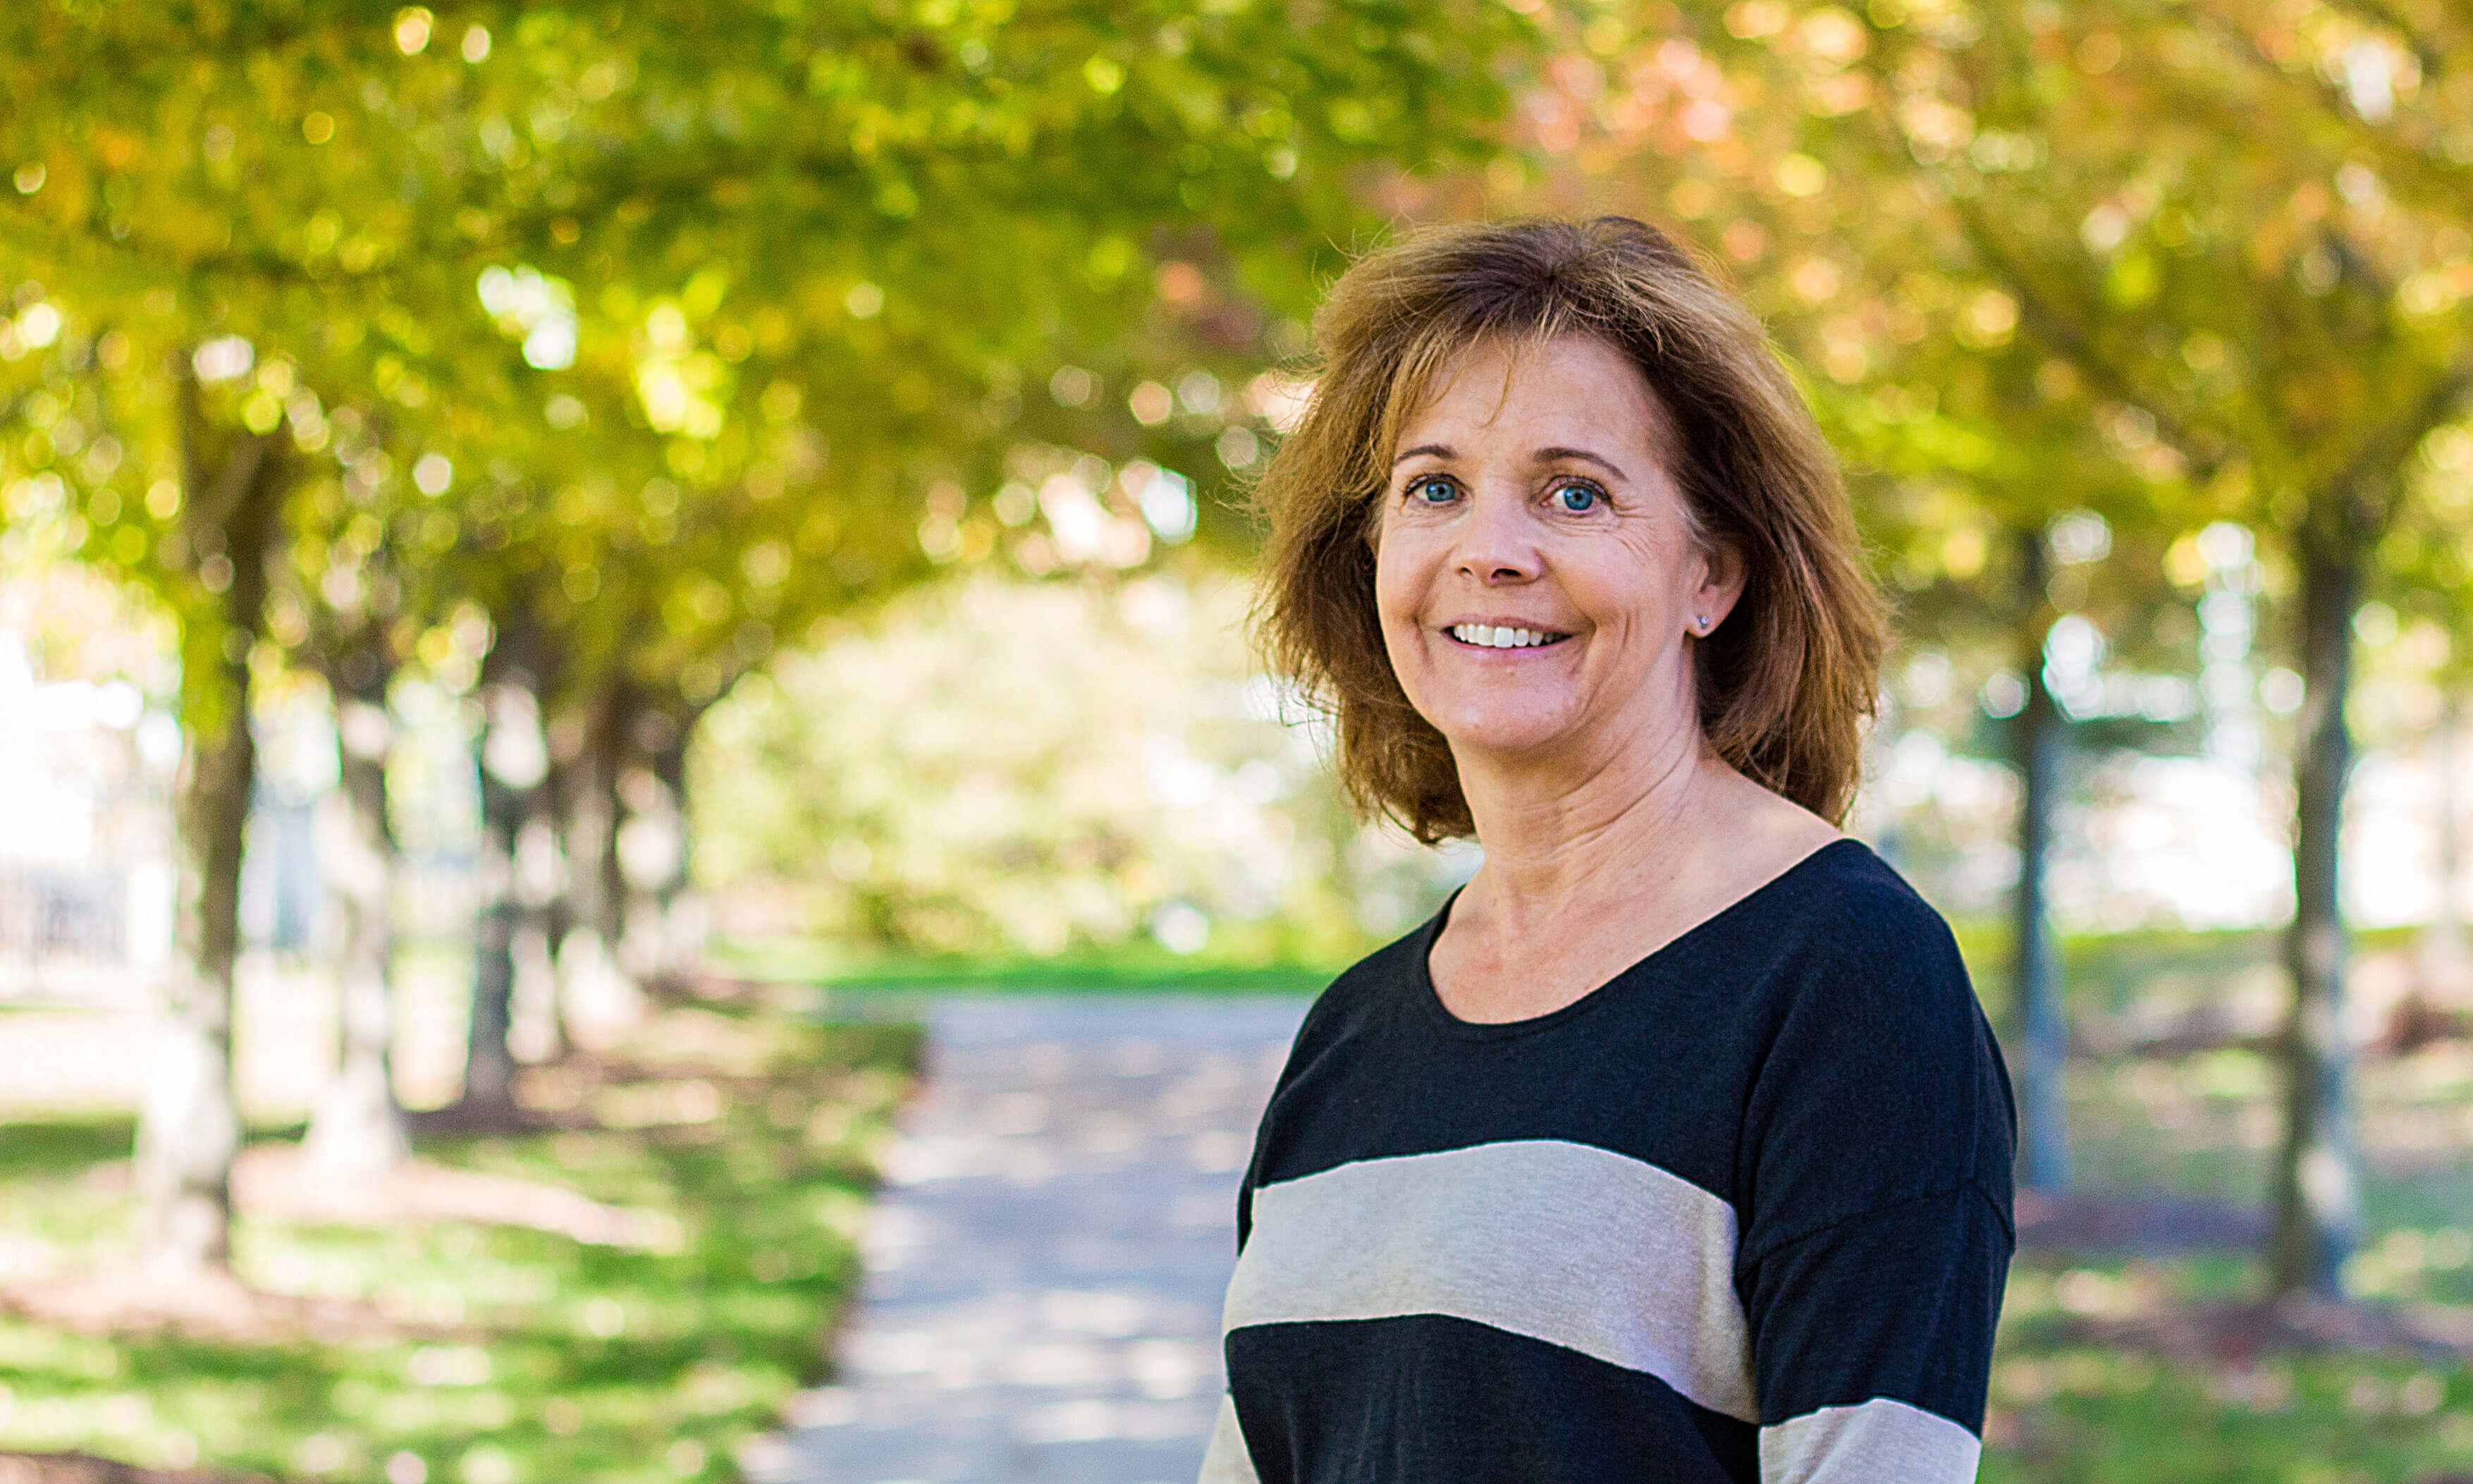 The director of Concordia University Wisconsin's Physician Assistant program has been named the Wisconsin Physician Assistant of the Year.